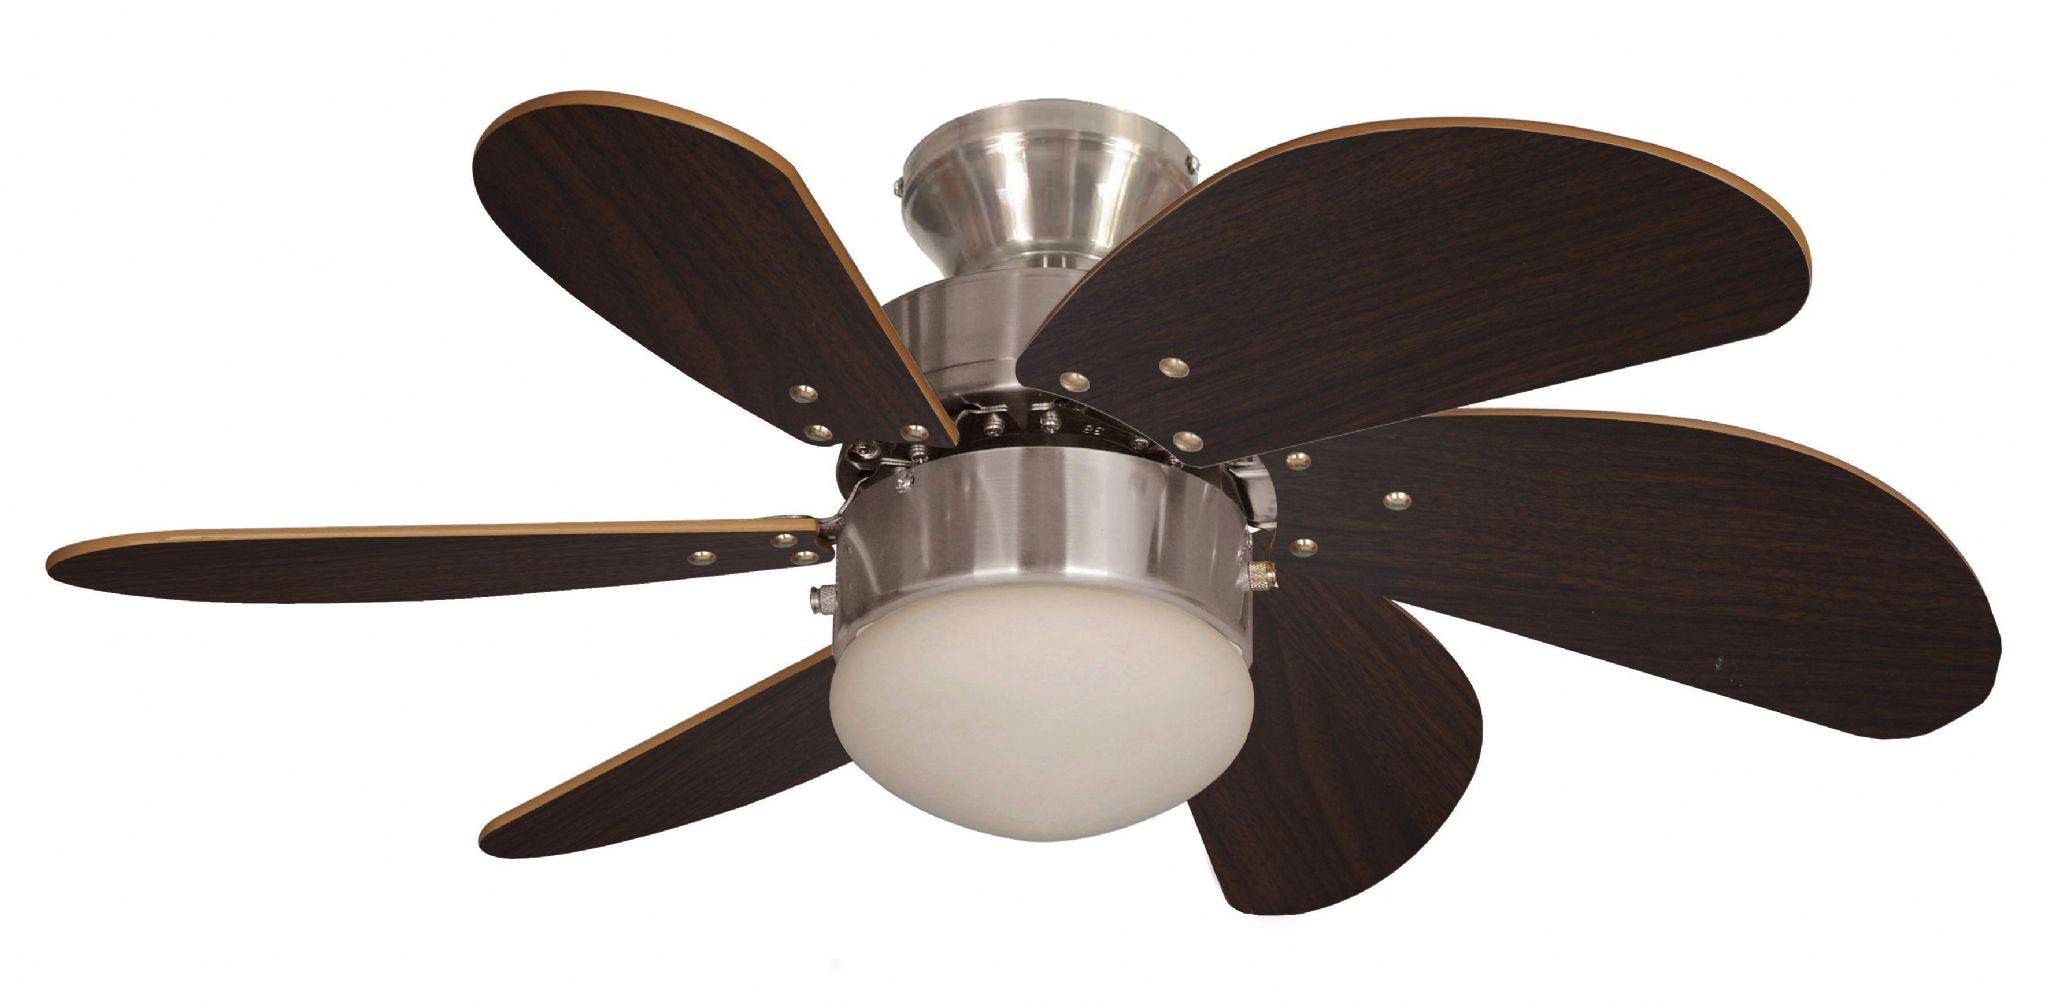 Eurofans atlanta 30 brushed nickel ceiling fan light 114390 eurofans atlanta 30 brushed nickel ceiling fan light 114390 aloadofball Images